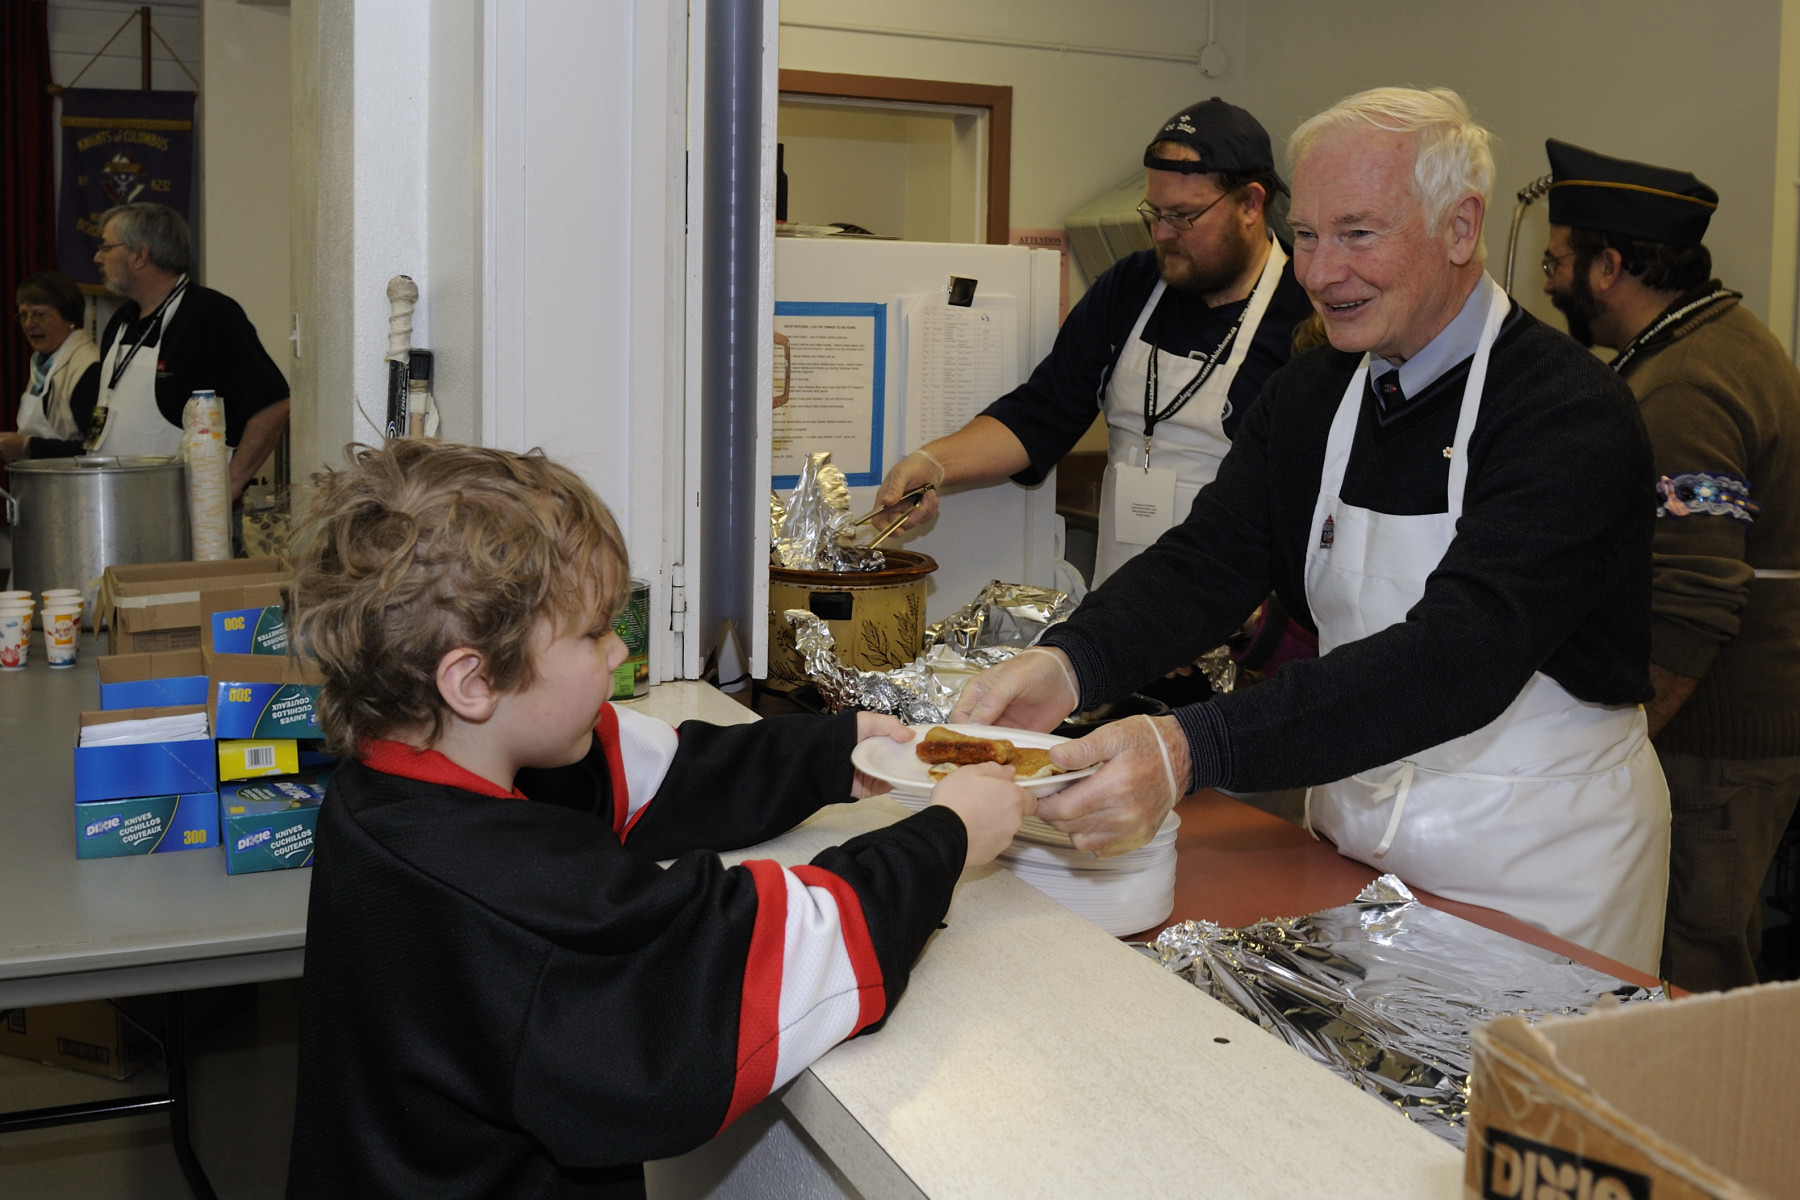 His Excellency was thrilled to serve breakfast to young hockey players participating in the activities presented as part of Hockey Day in Canada. The breakfast was organized by the Knights of Columbus.